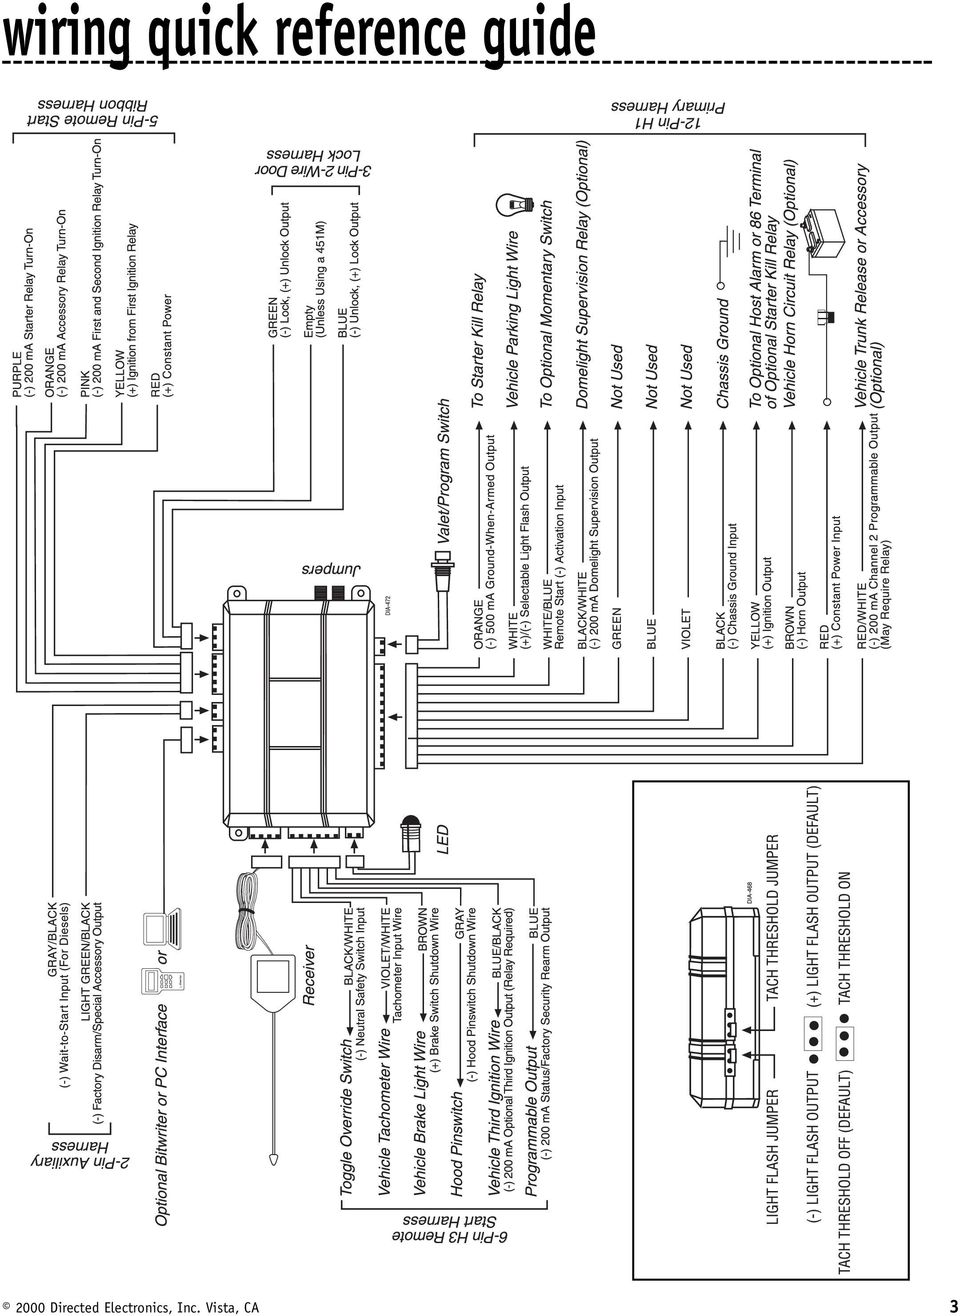 Model 552t Installation Guide Pdf H1 Wiring Diagram 2000 Directed